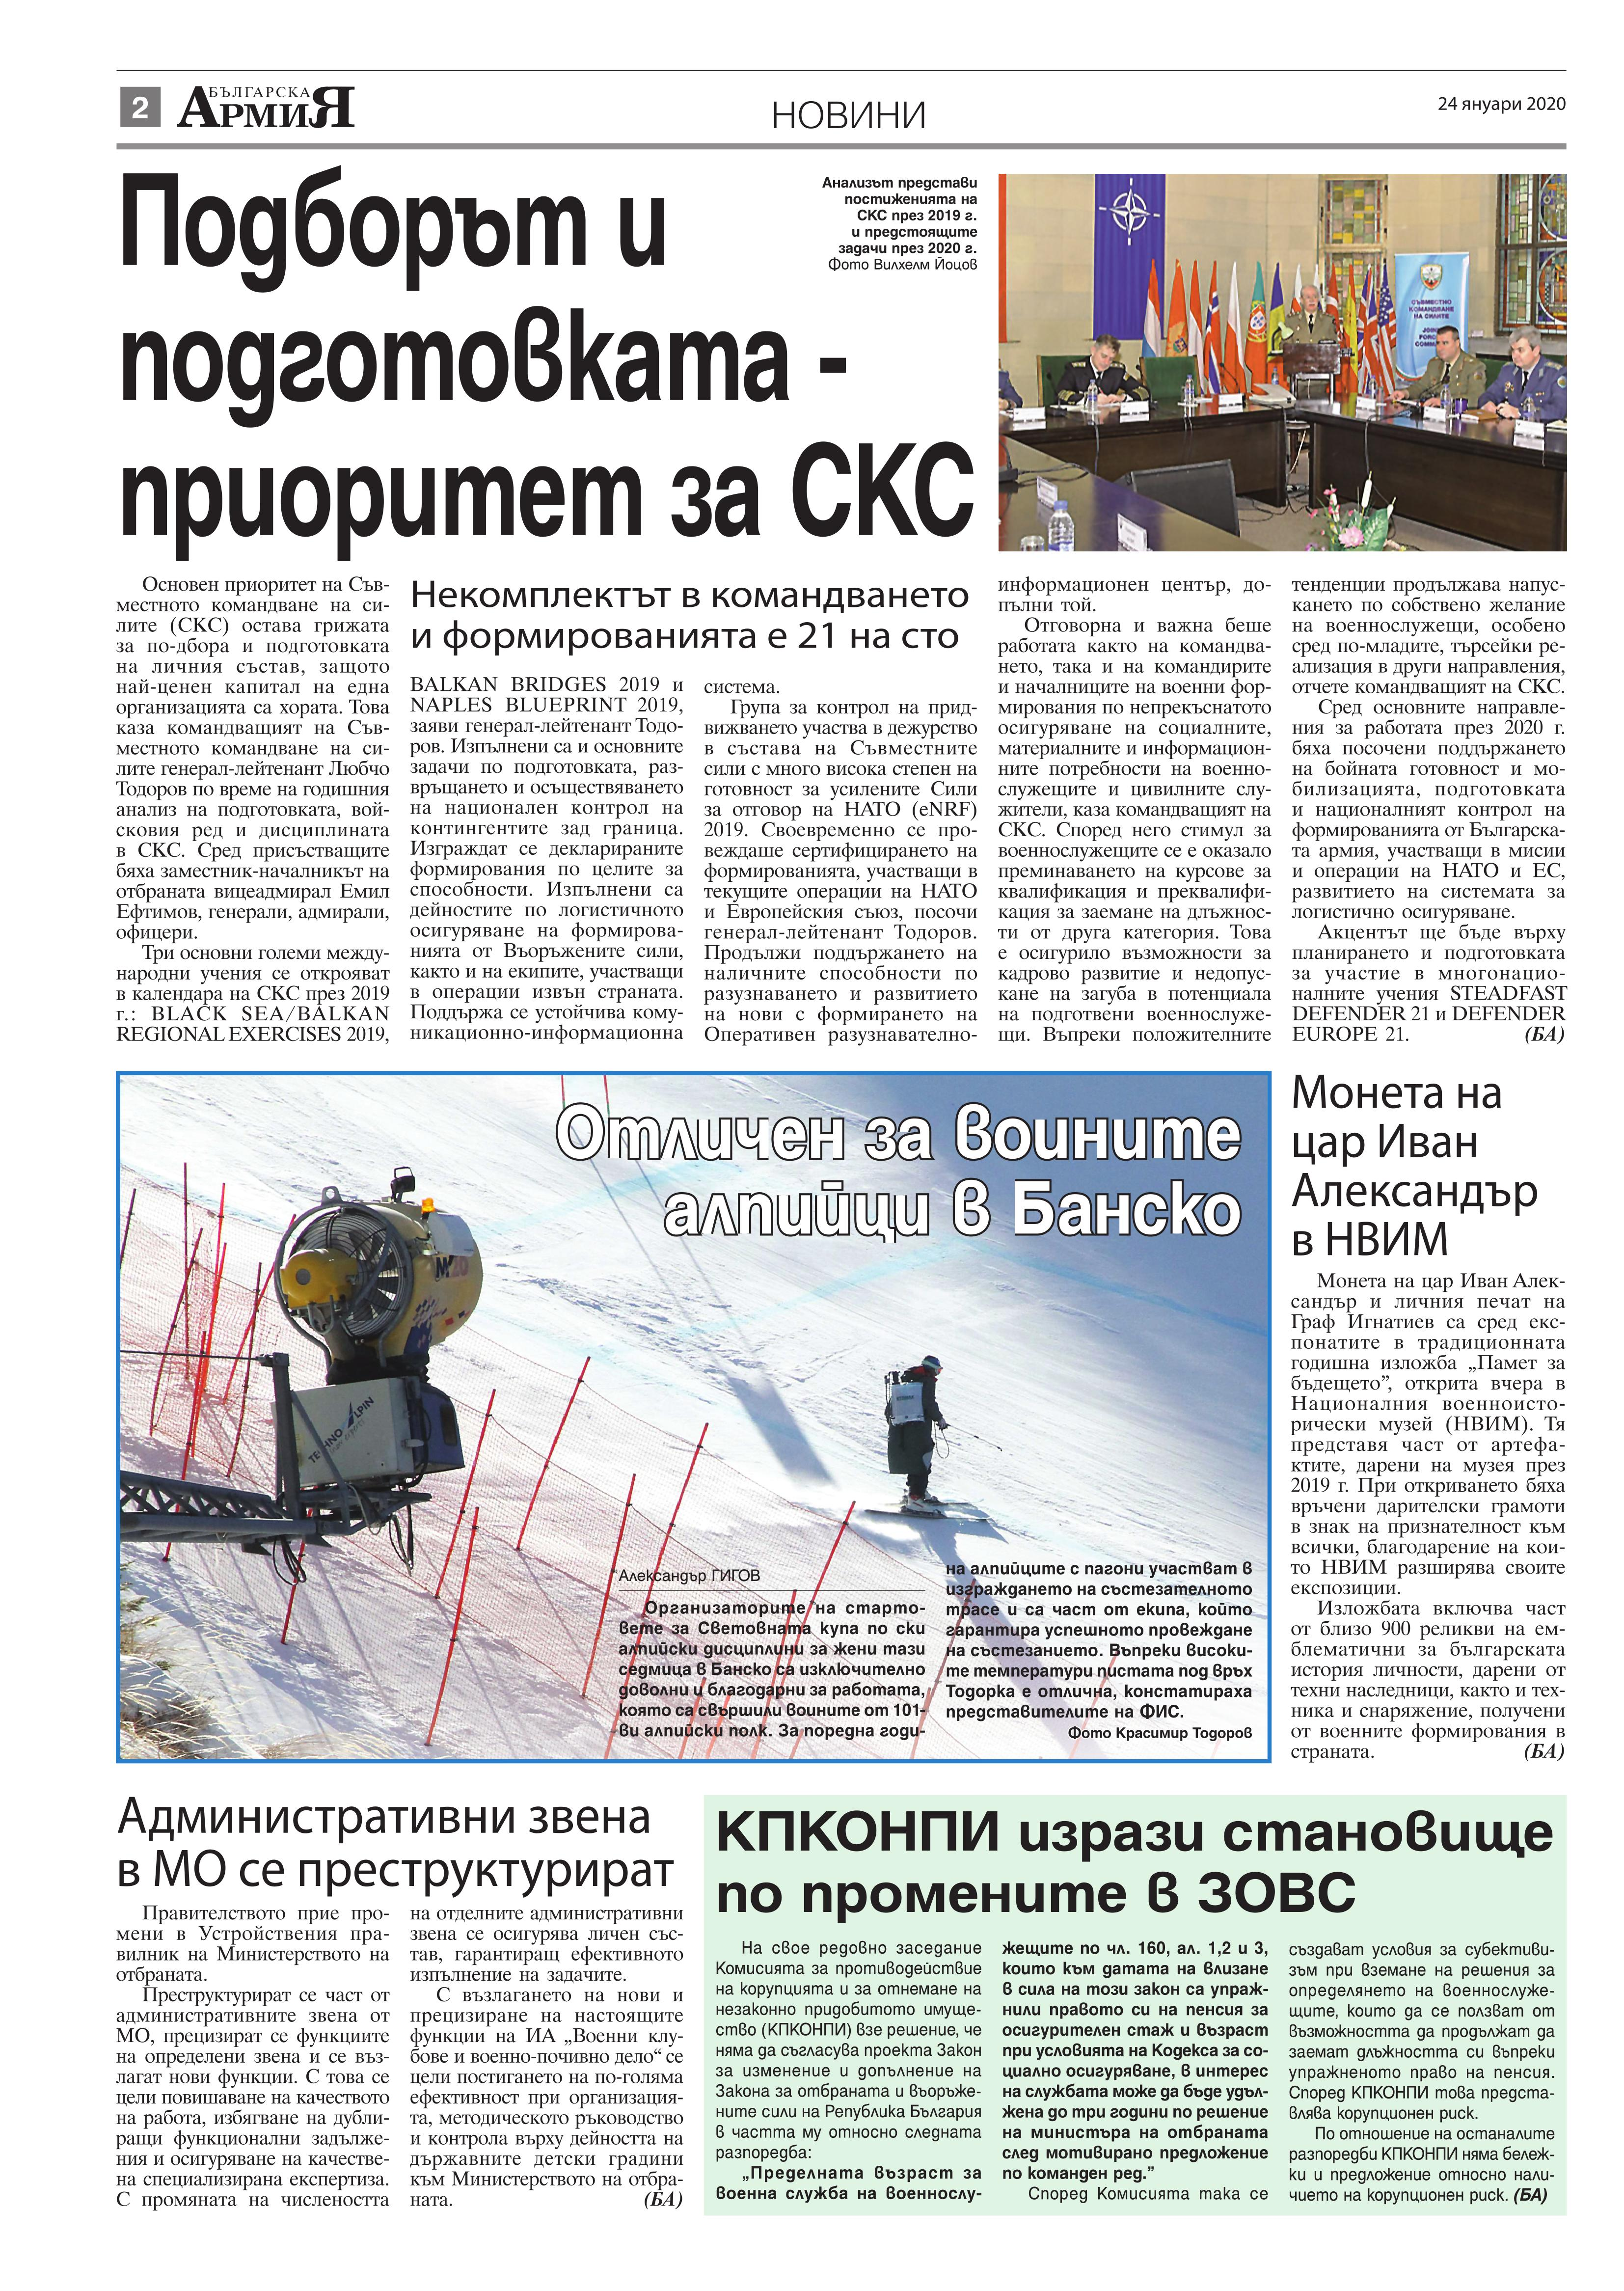 https://www.armymedia.bg/wp-content/uploads/2015/06/02.page1_-120.jpg